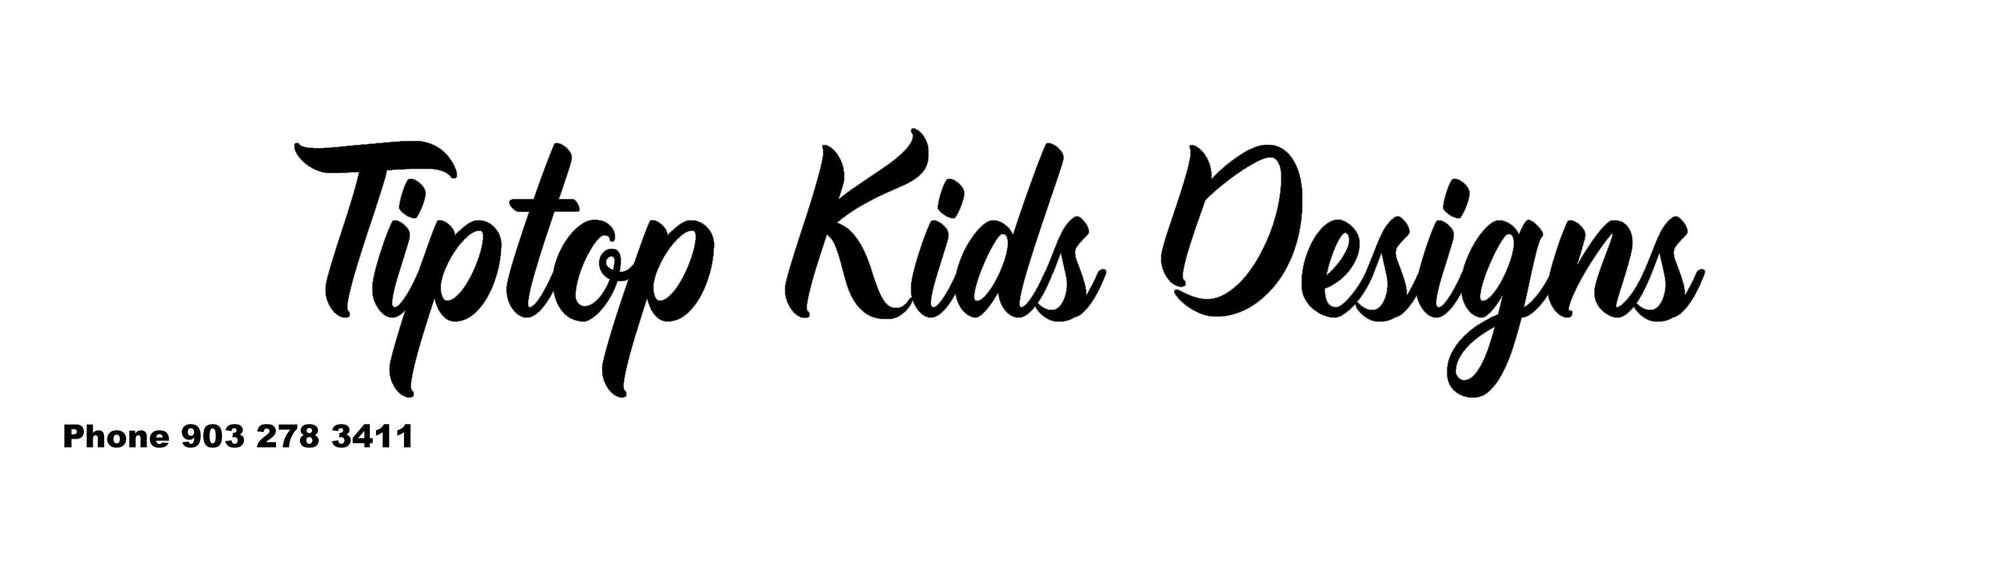 TipTopKidsDesigns